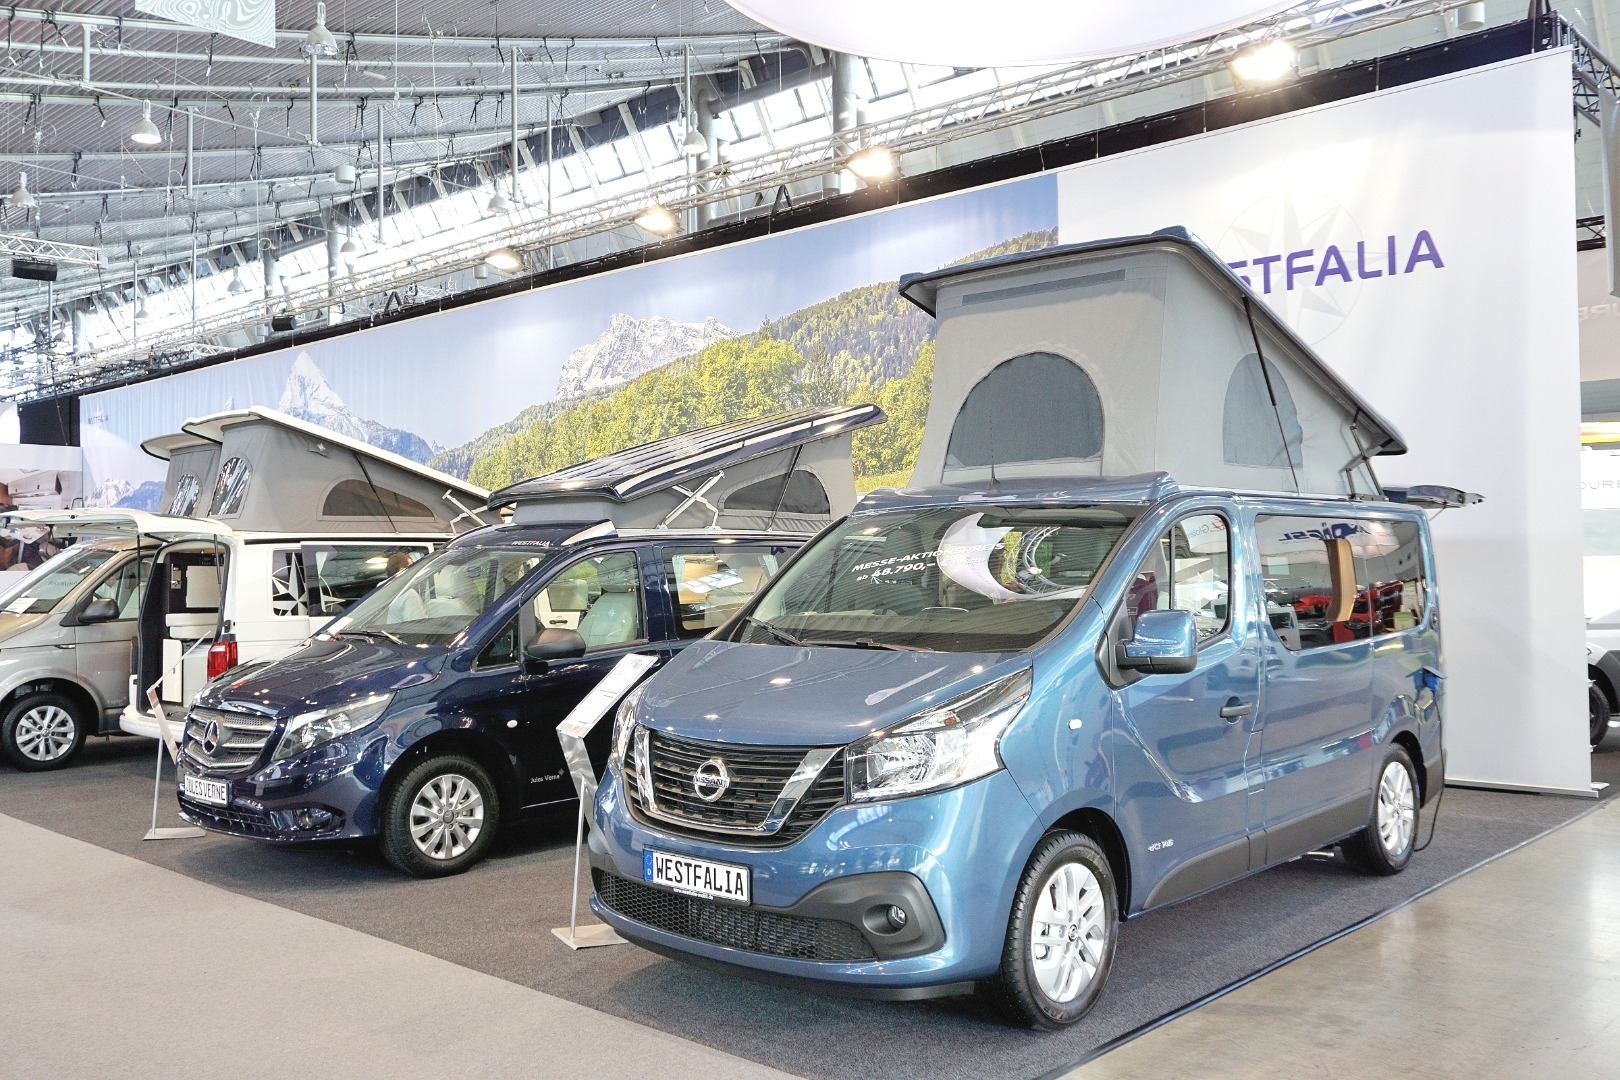 Versatile Nissan Michelangelo camper van plugs and plays